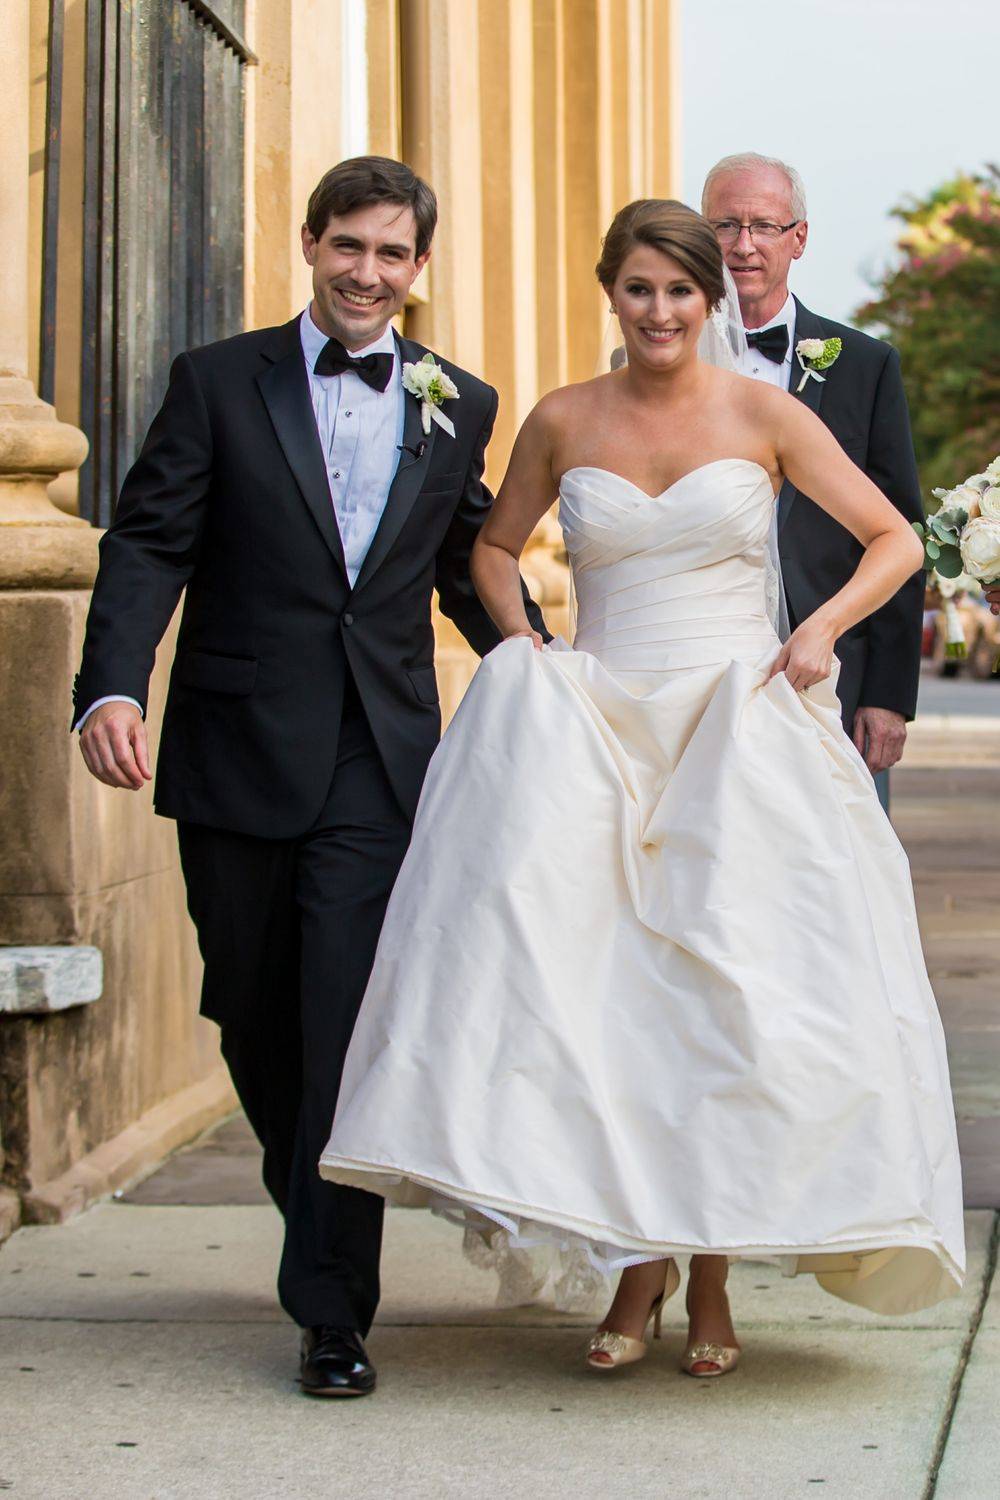 Ashley and Ben walk down the street after their wedding at St. Philips Church in Charleston, SC